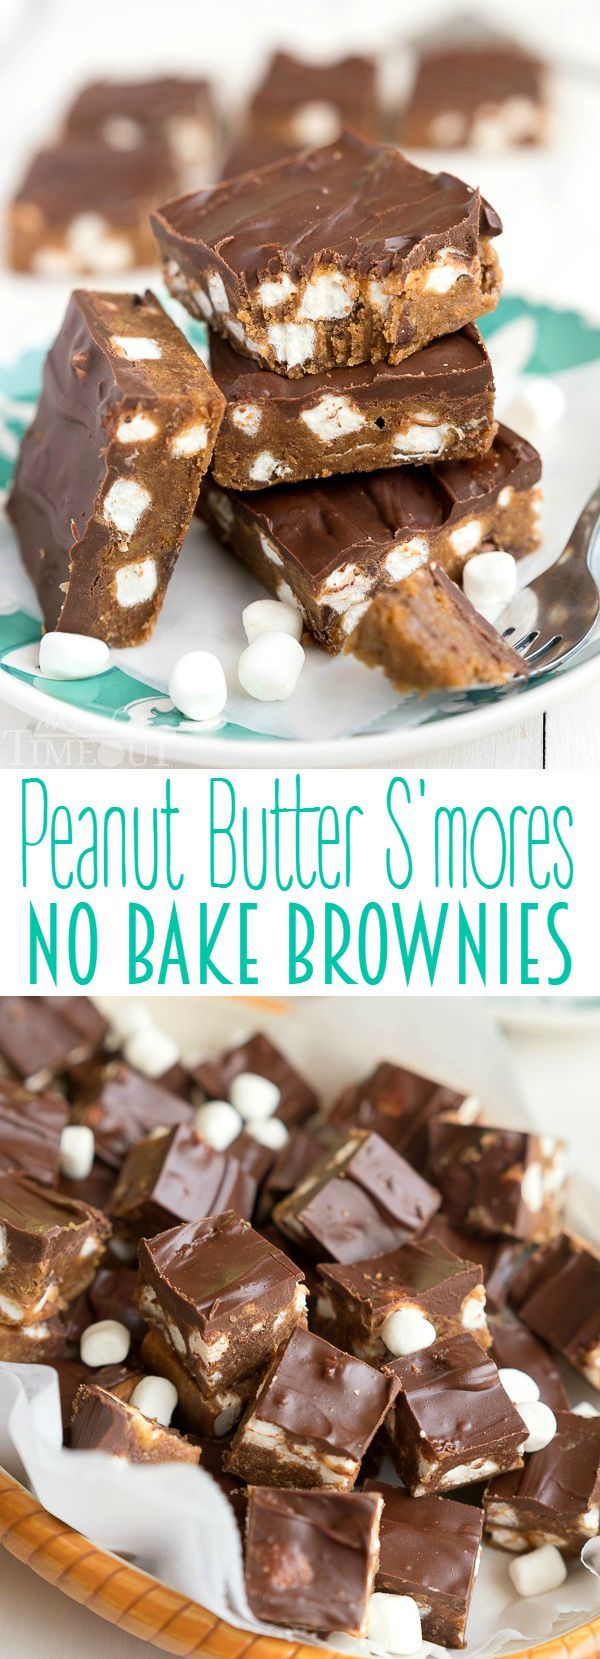 Decadent Peanut Butter S'mores No Bake Brownies can be whipped up in a jiffy and are just perfect for the hot summer months! This easy dessert recipe will having you coming back again and again. Cut them into small bites to feed a crowd!